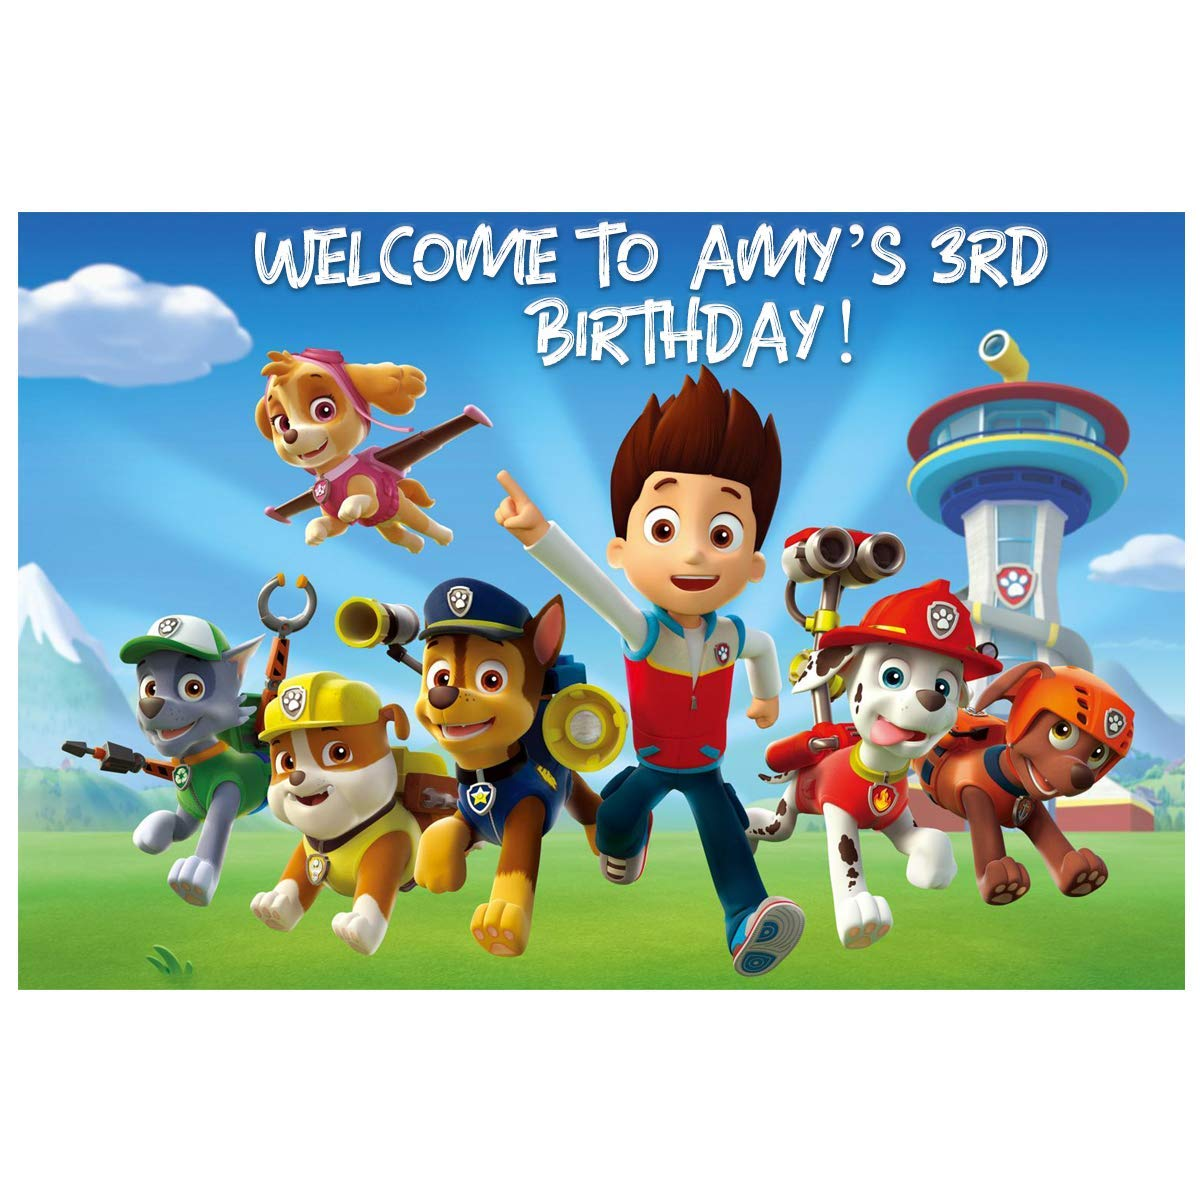 Num191 Backdrop Customized for Birthday Decor HoRmi Replacement for Paw Patrol Party Decoration Supplies